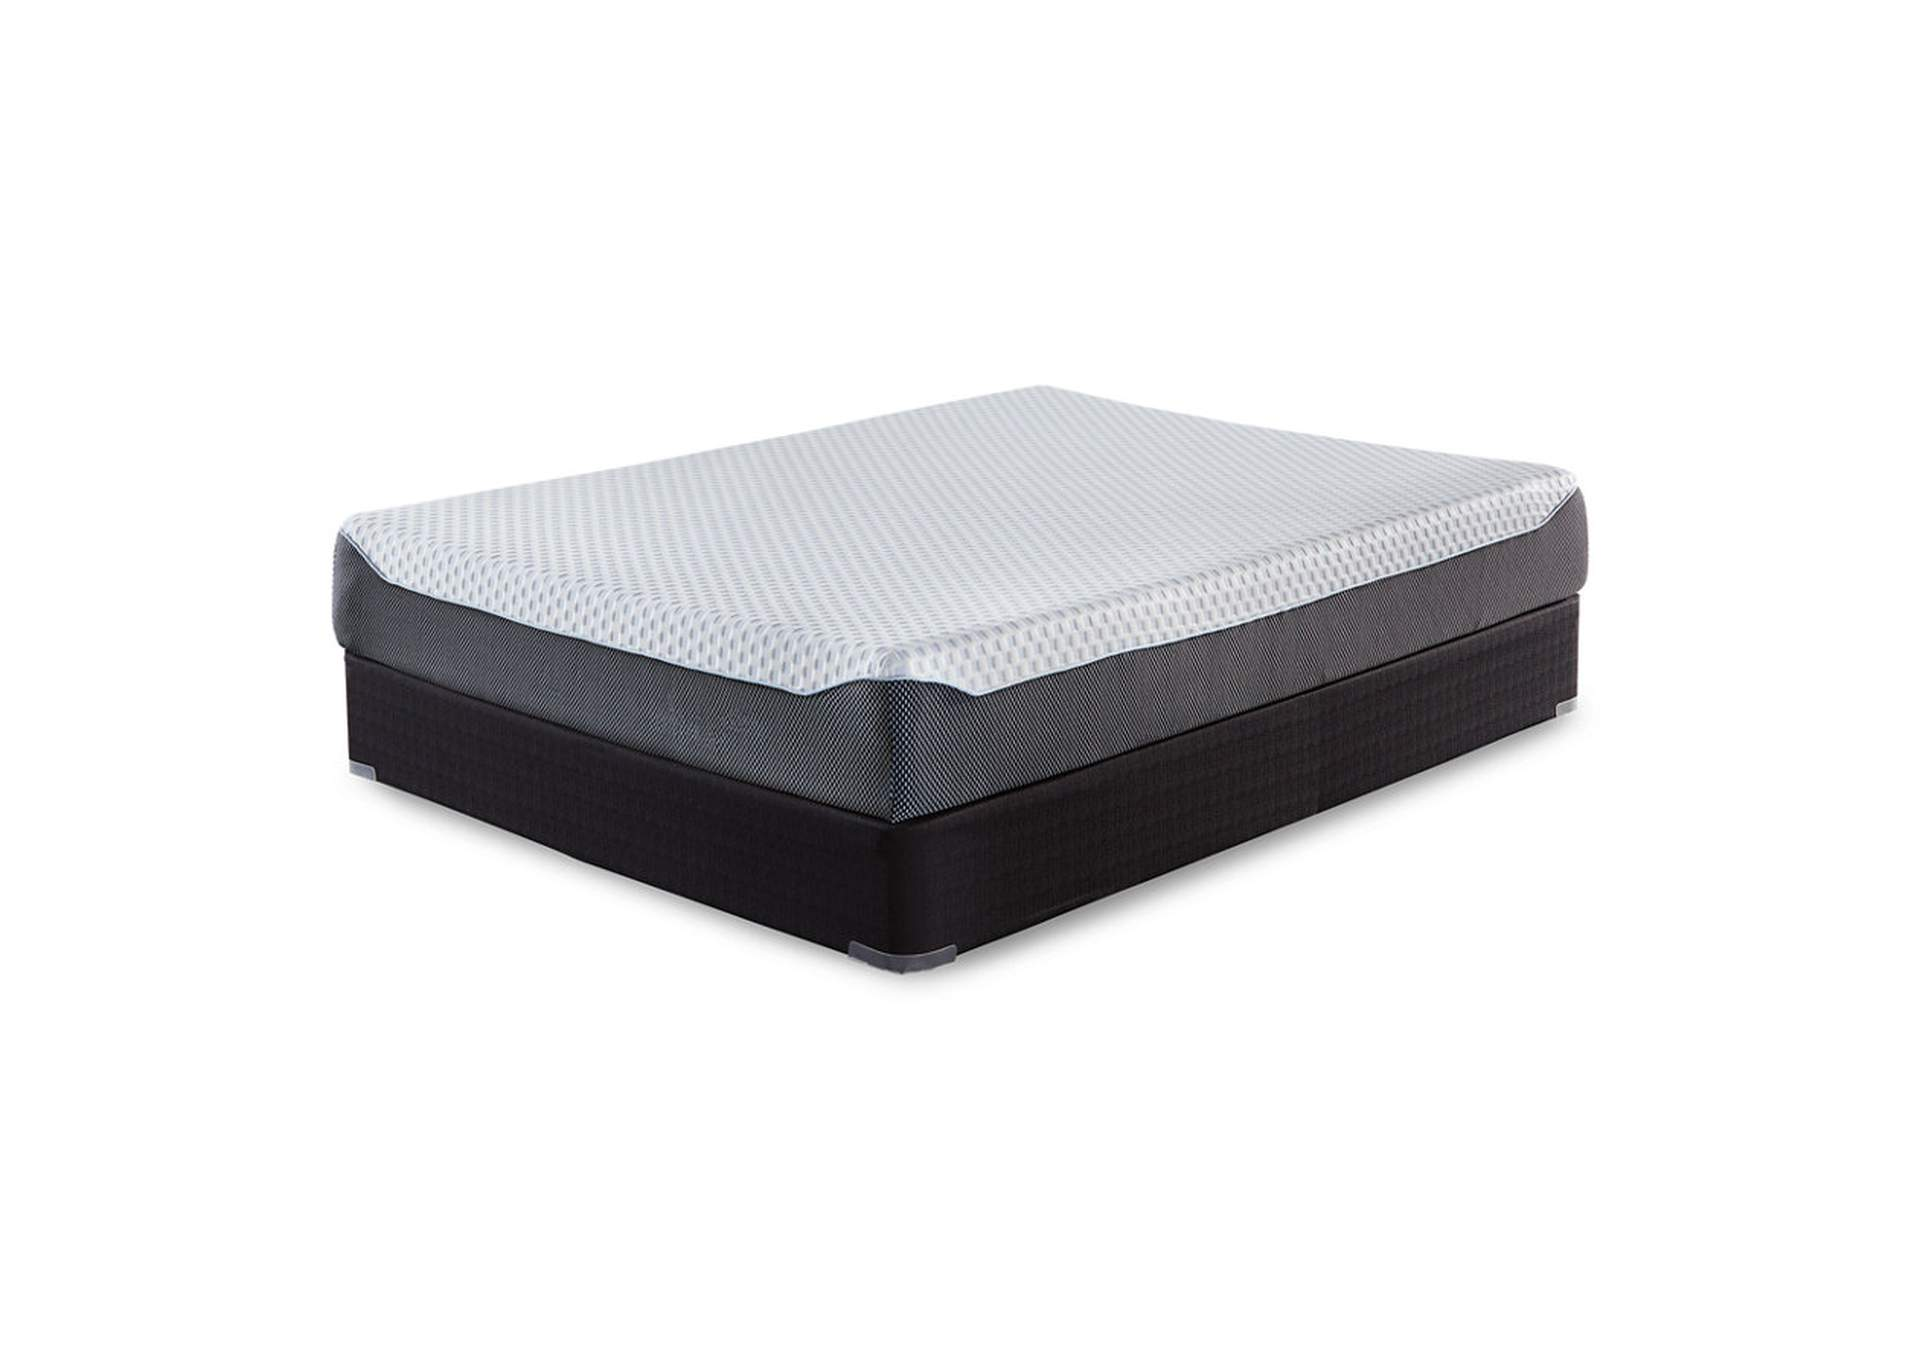 10 Inch Chime Elite Memory Foam Full Mattress,Sierra Sleep by Ashley